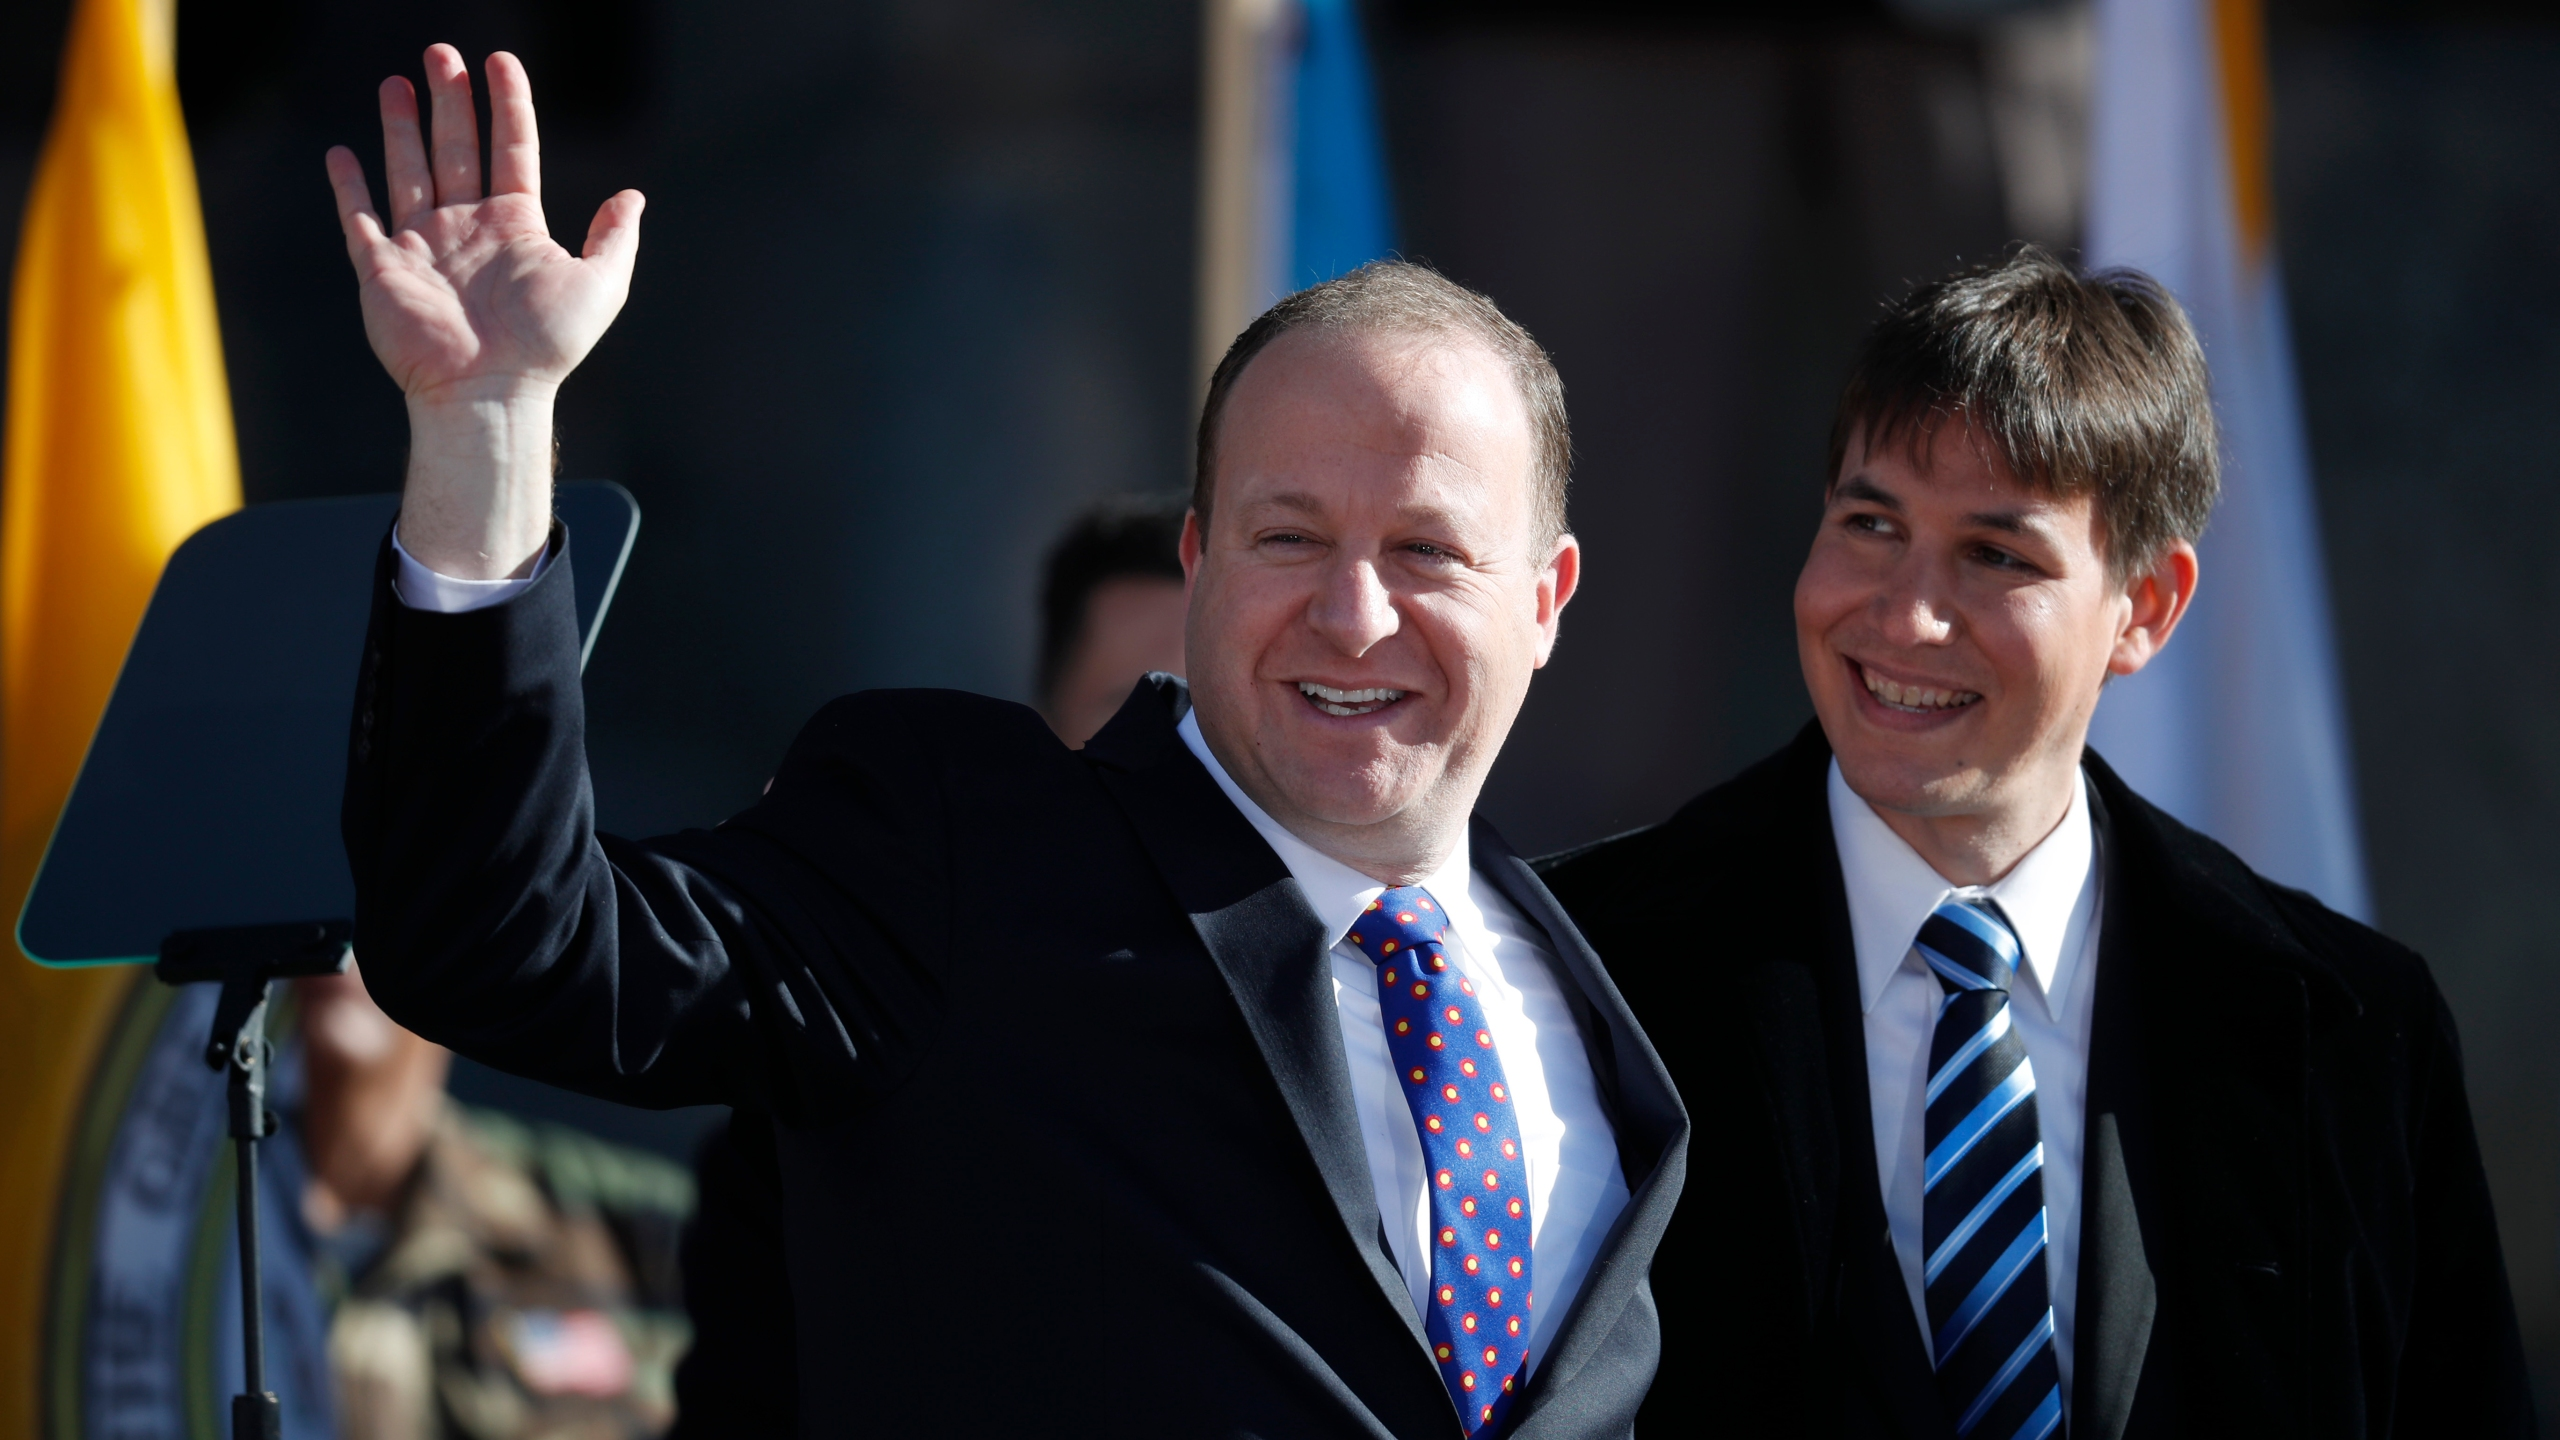 Colorado Gov. Jared Polis, left, waves to the crowd, accompanied by his partner, Marlon Reis, after Polis took the oath of office during his inauguration ceremony Tuesday, Jan. 8, 2019, in Denver. (AP Photo/David Zalubowski, Pool)